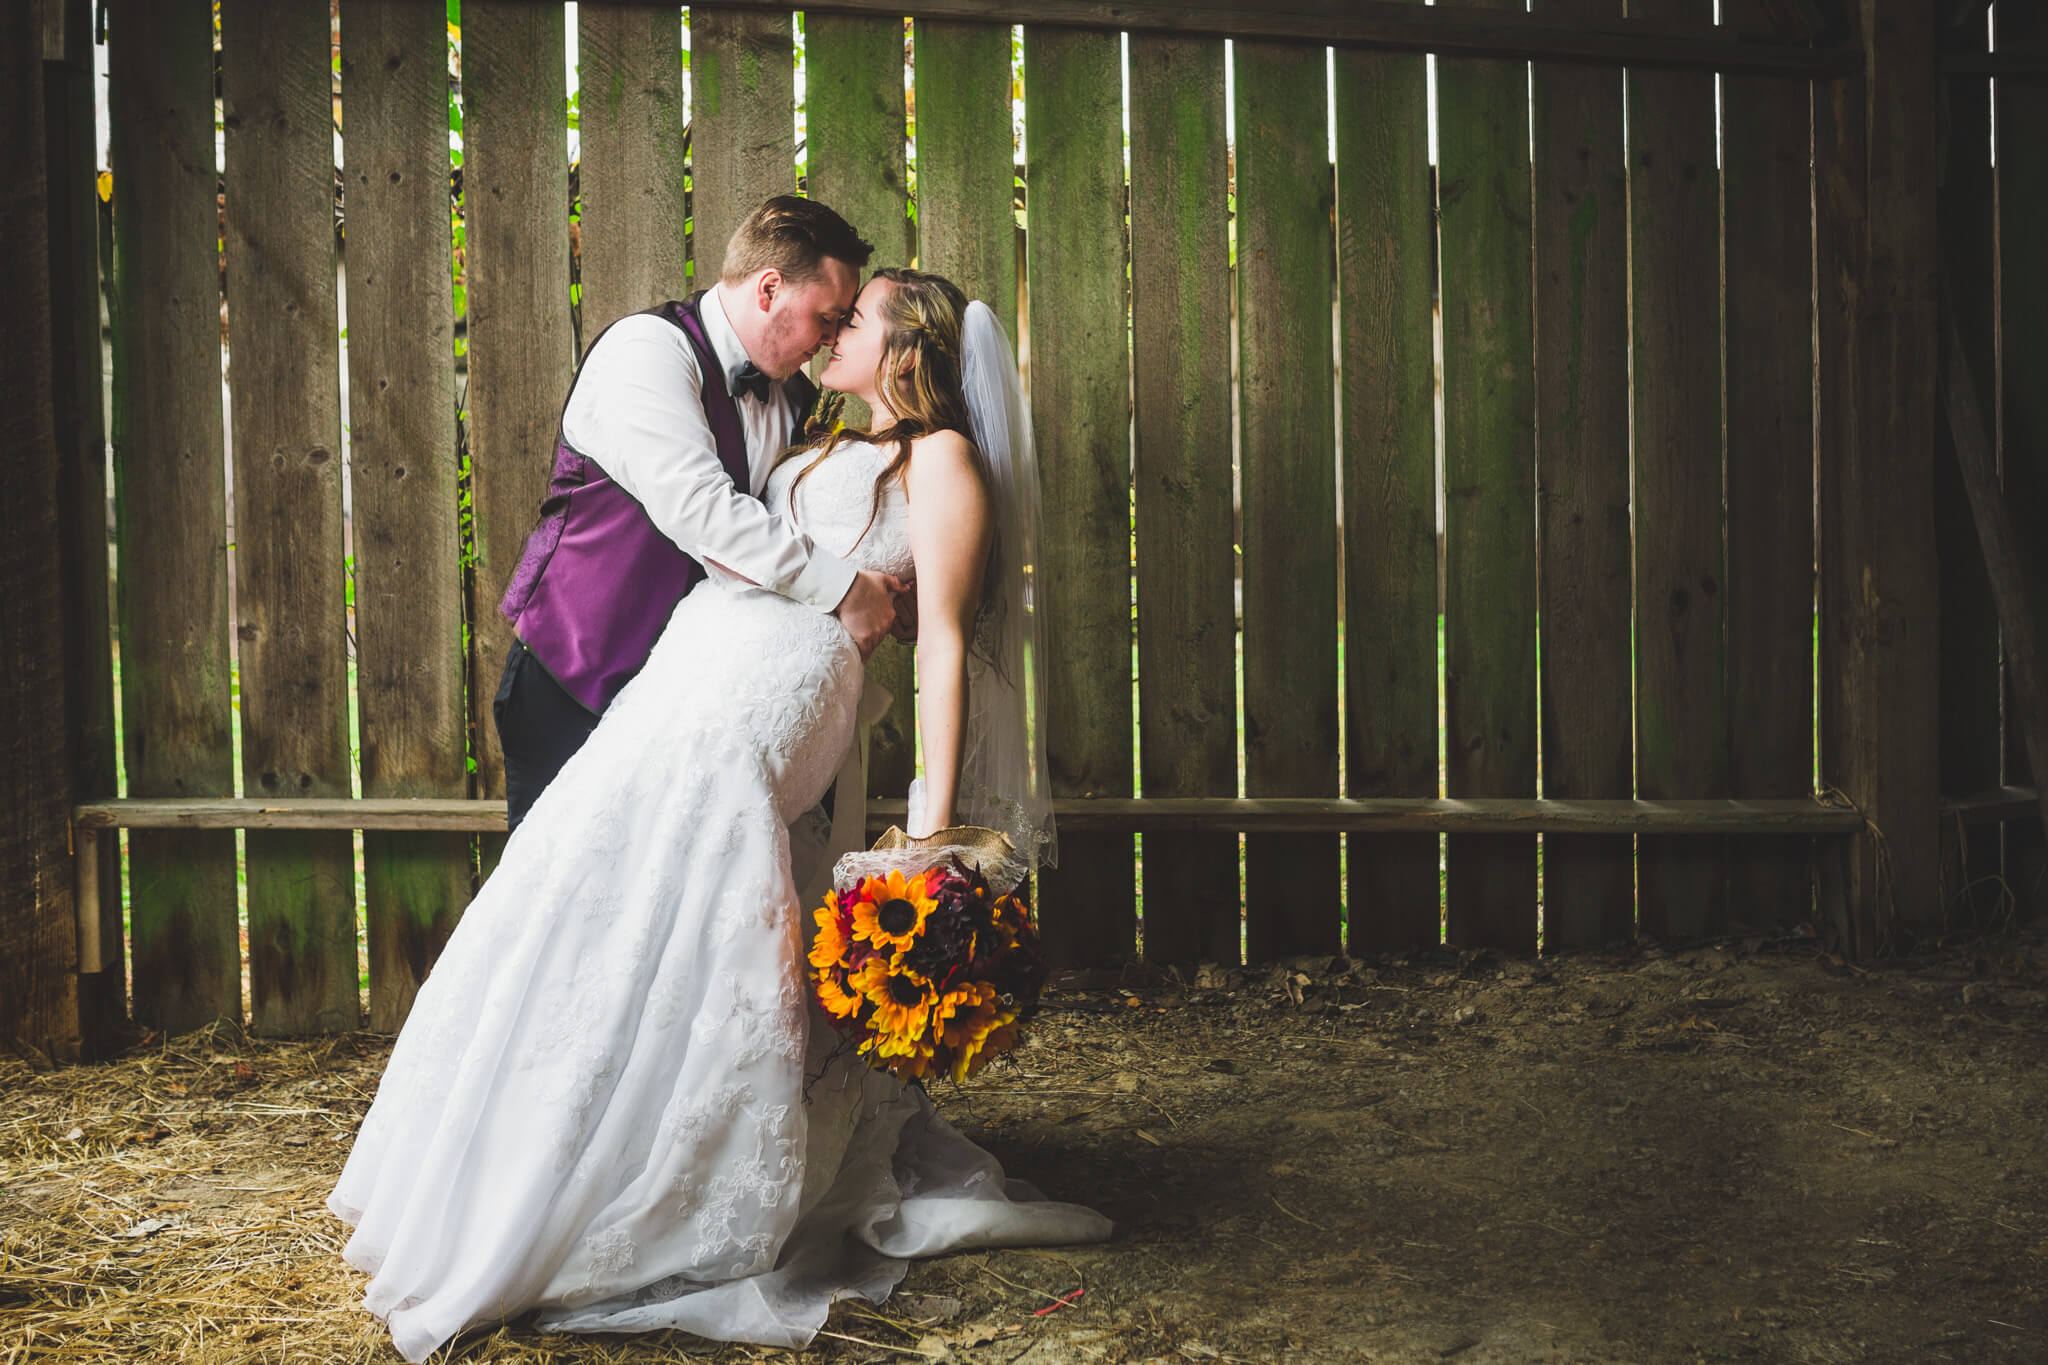 Mitcham's Barn Wedding-87.JPG